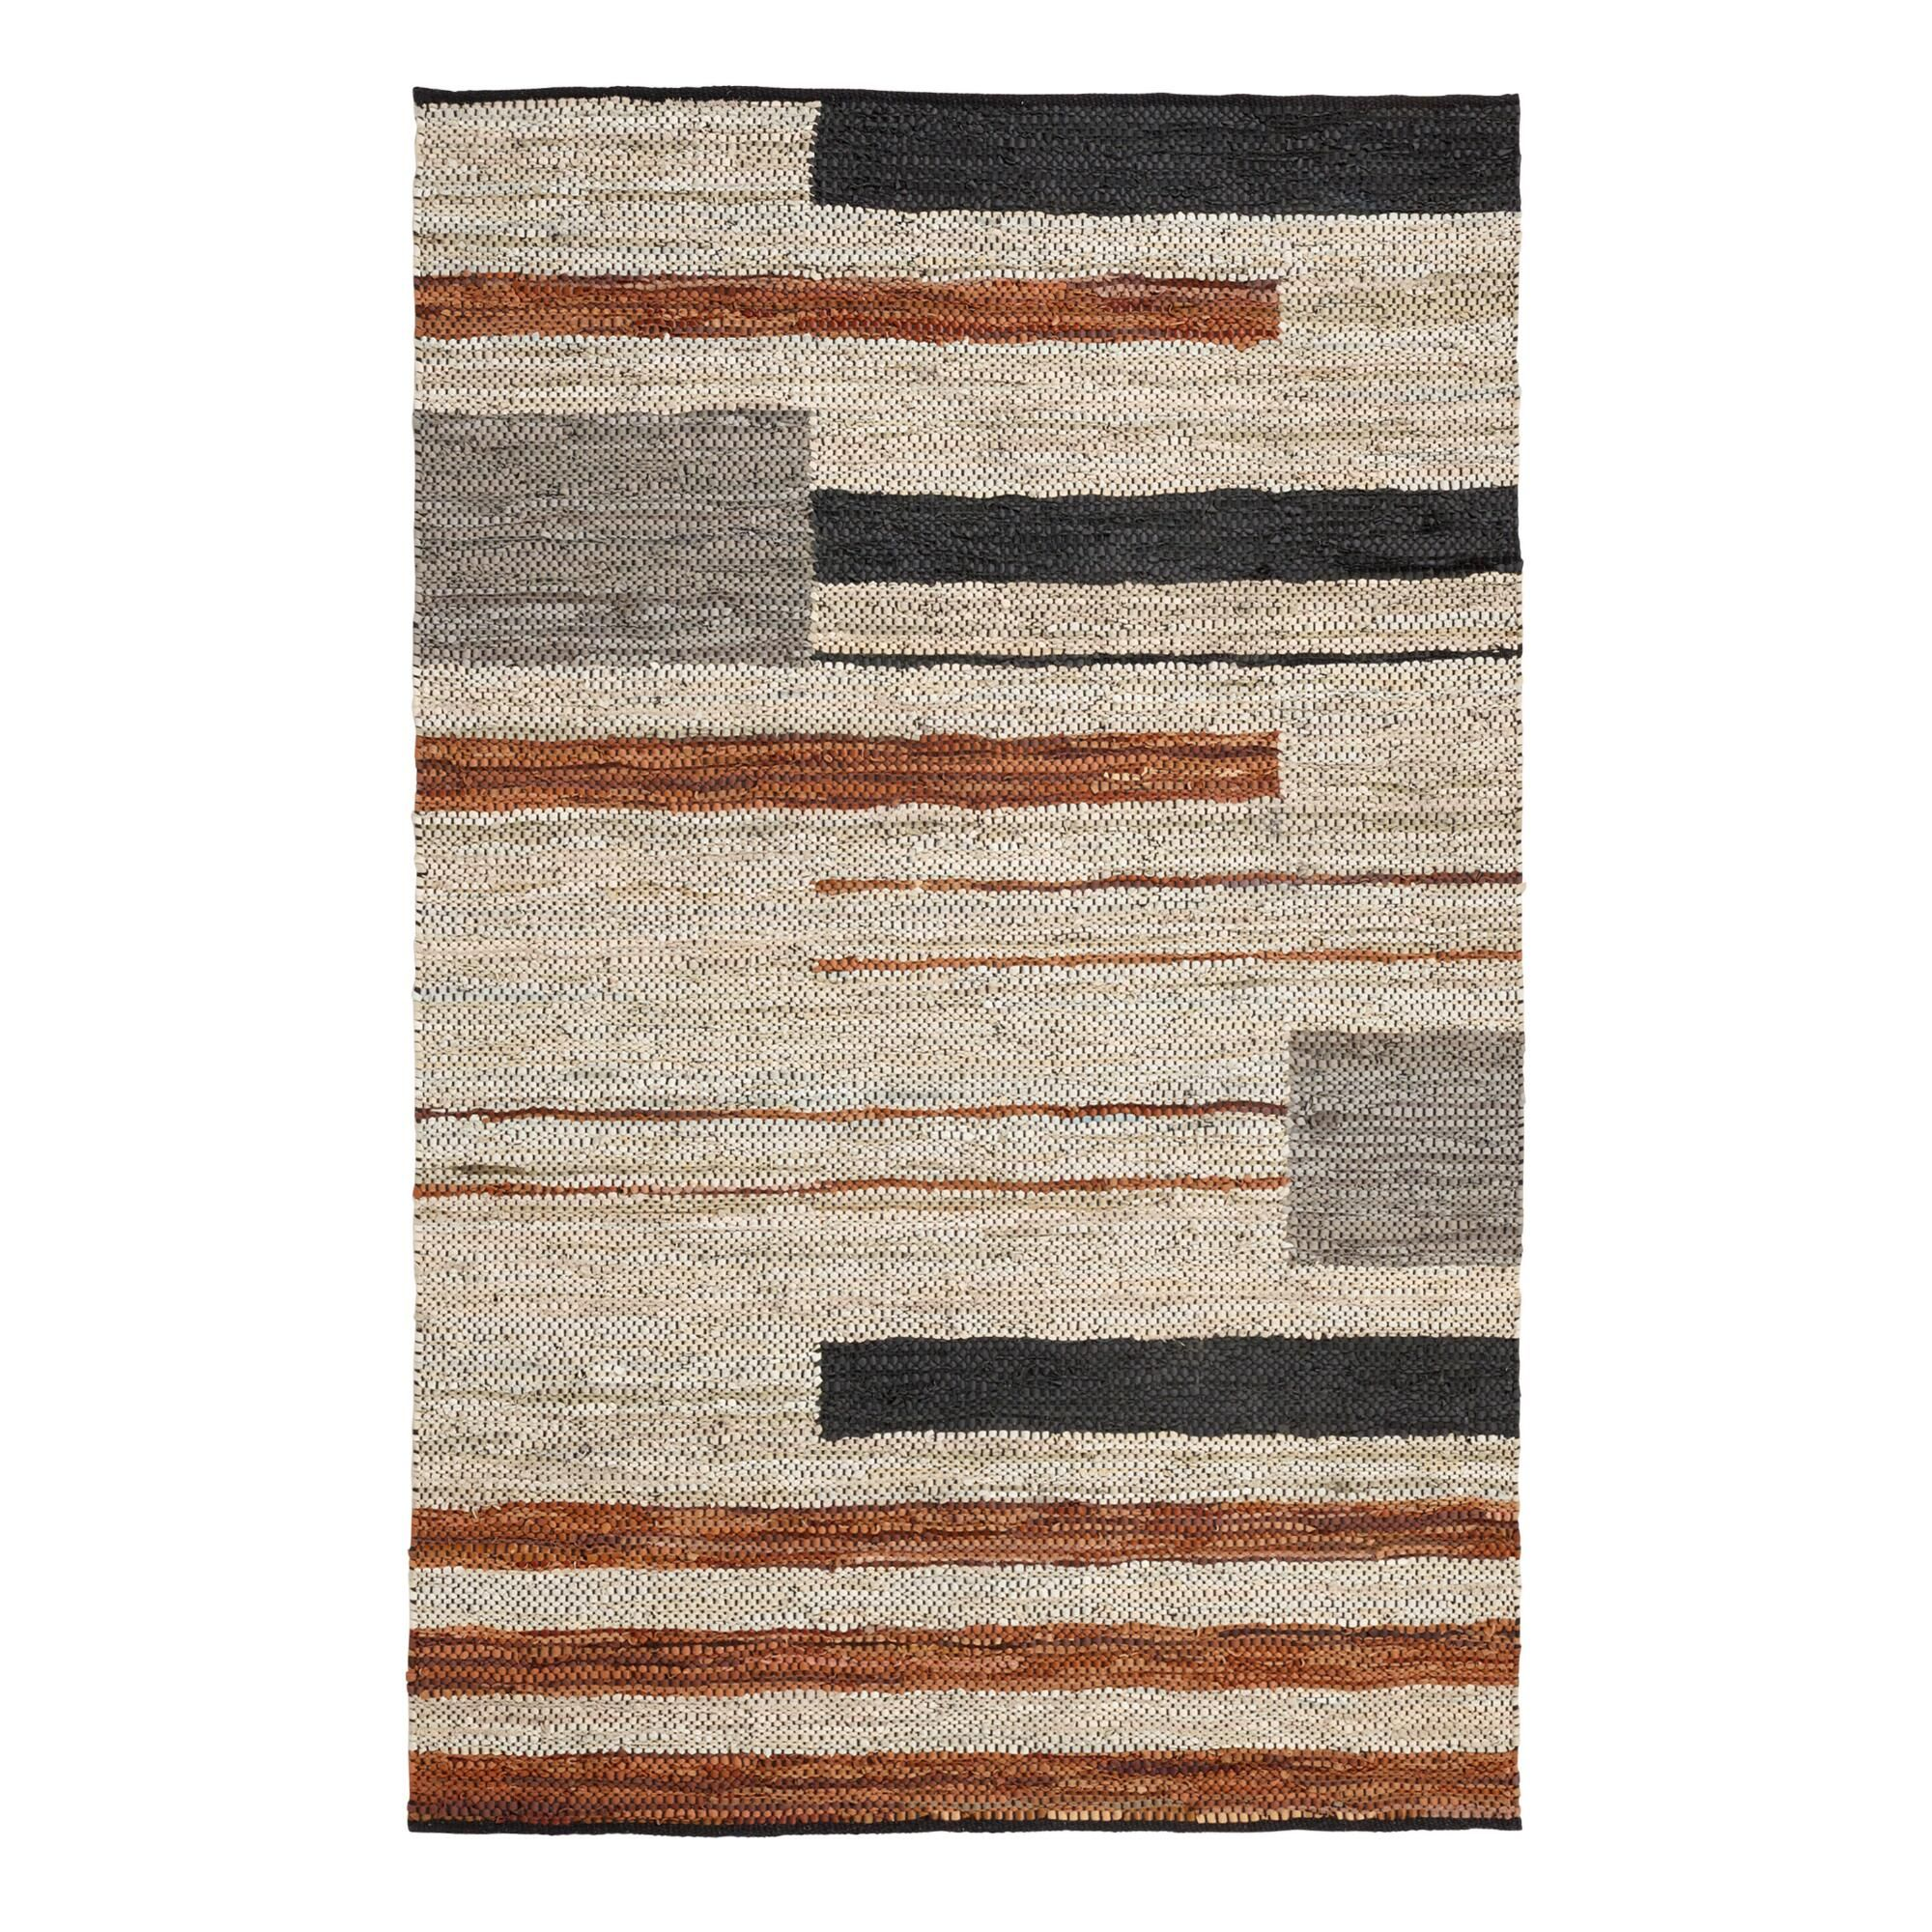 White Black And Brown Leather Fillmore Area Rug 8ftx10ft